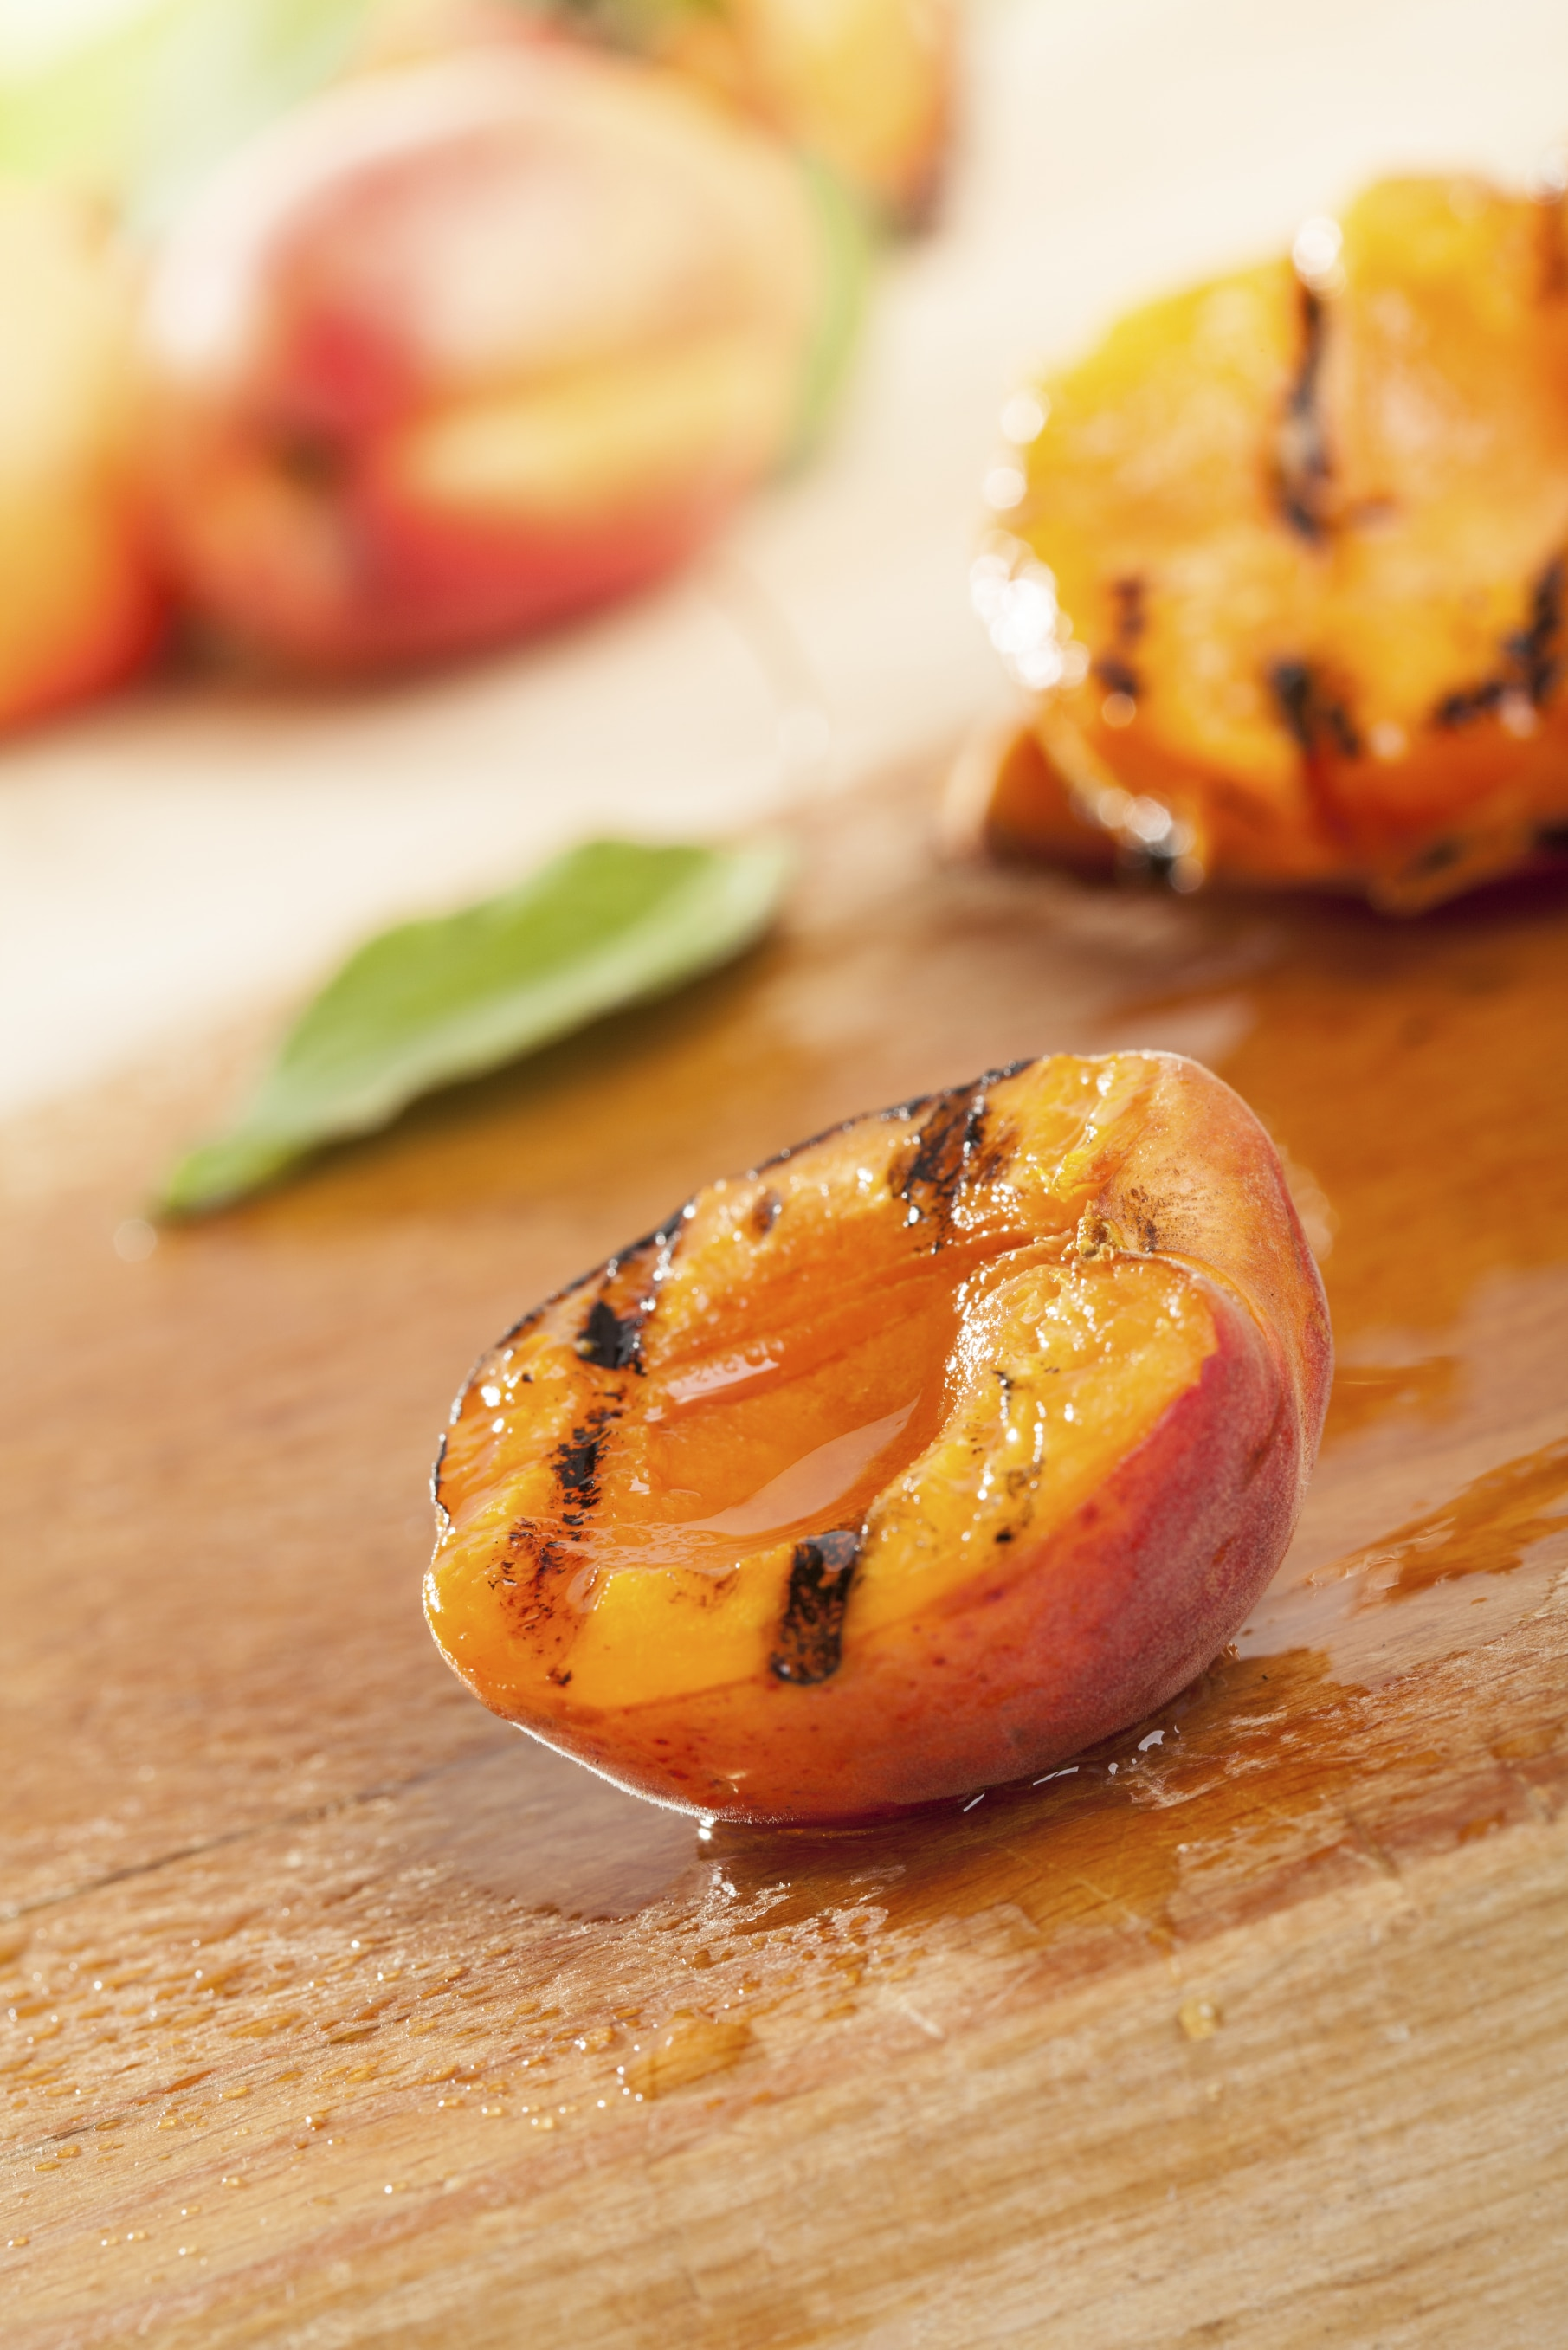 Grilled Peach Dessert Recipes